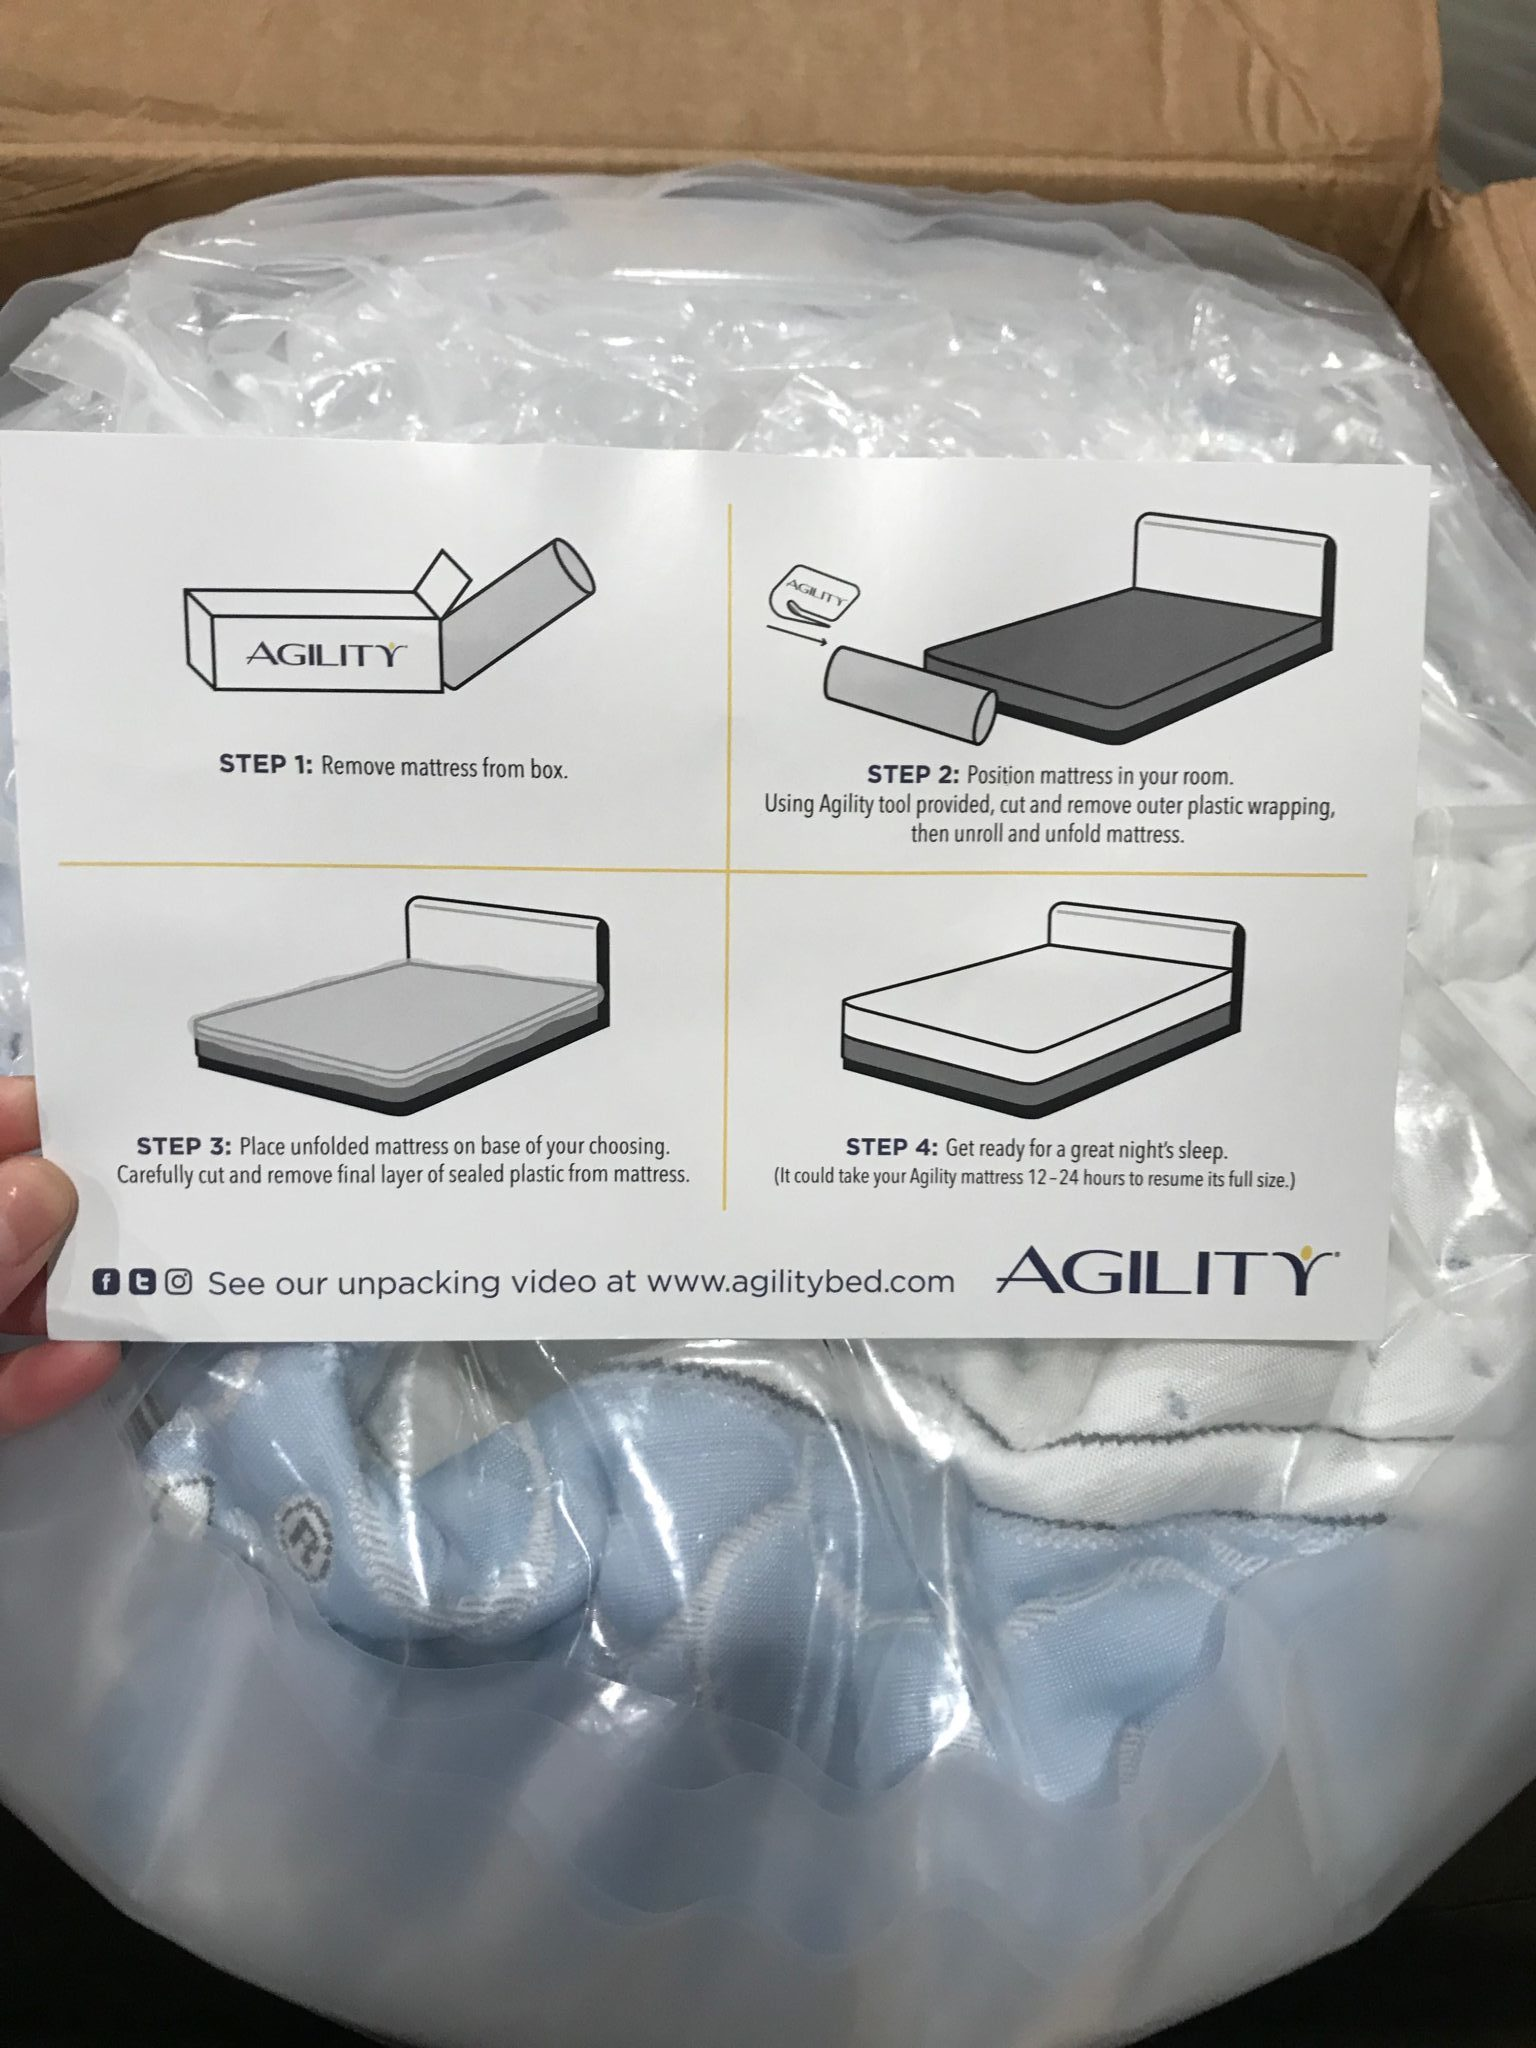 In home test, unboxing showing setup instructions for mattress review